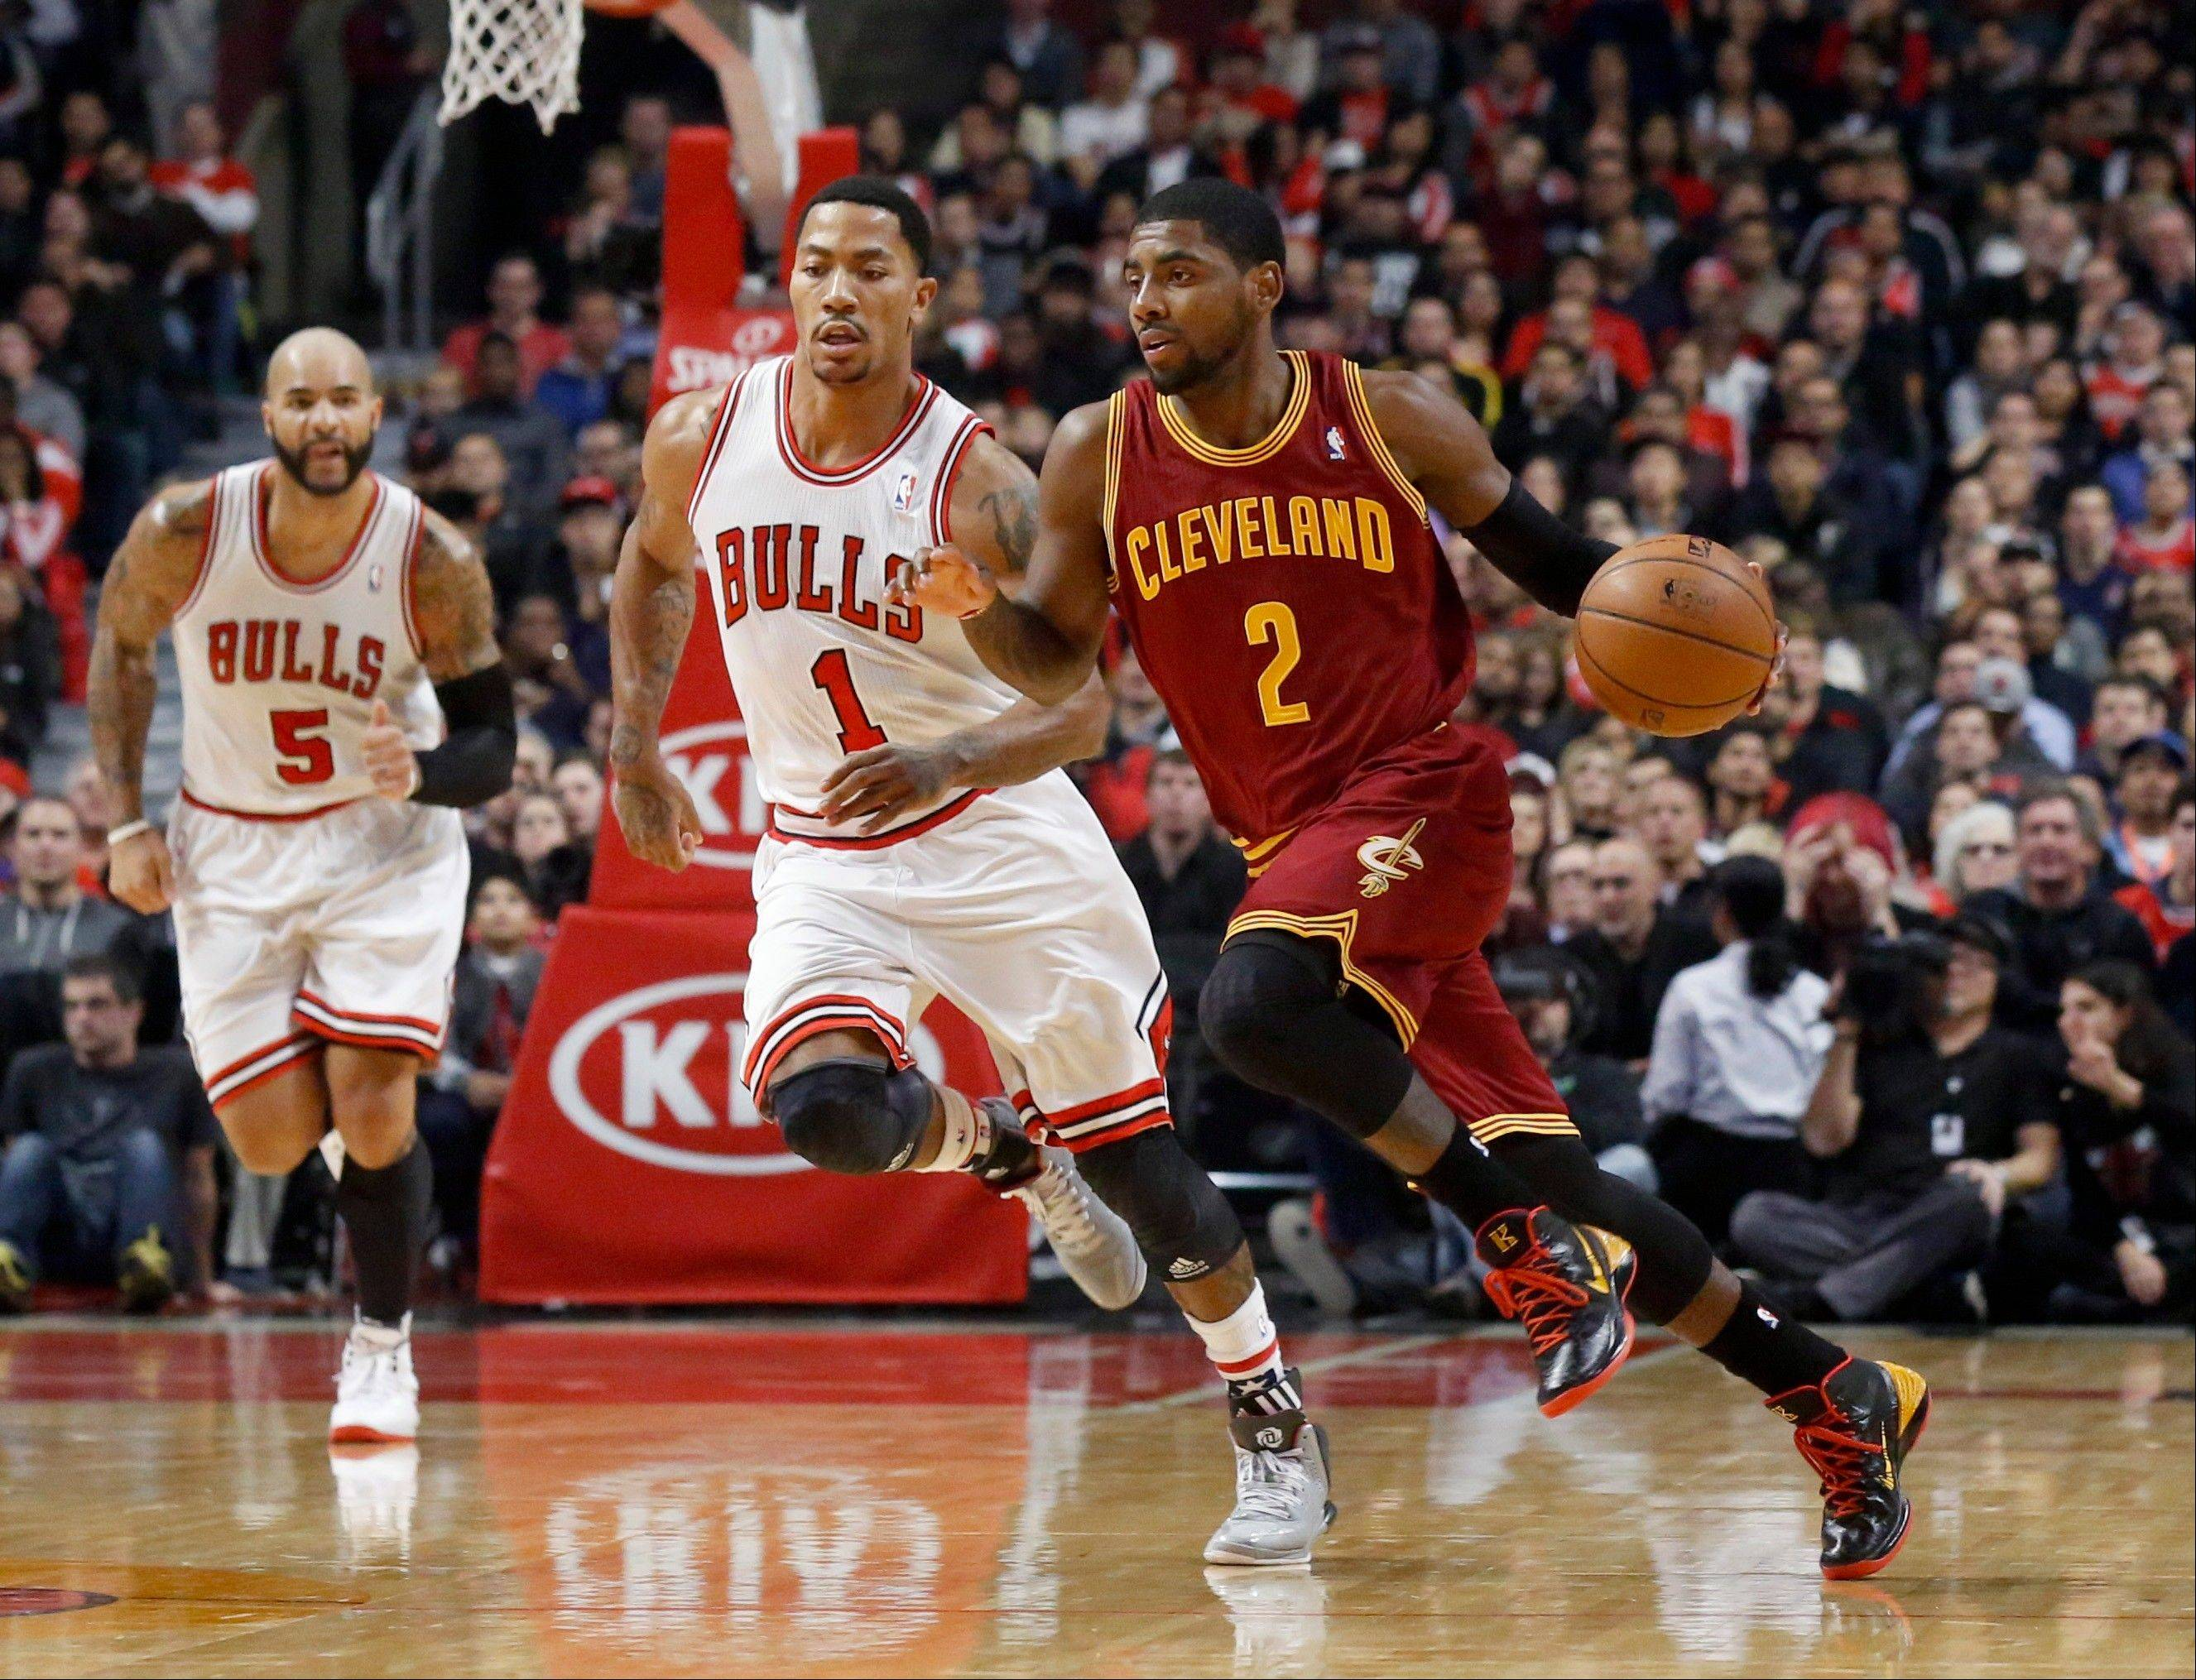 Cavaliers guard Kyrie Irving brings the ball up court as the Bulls' Derrick Rose defends Monday night.